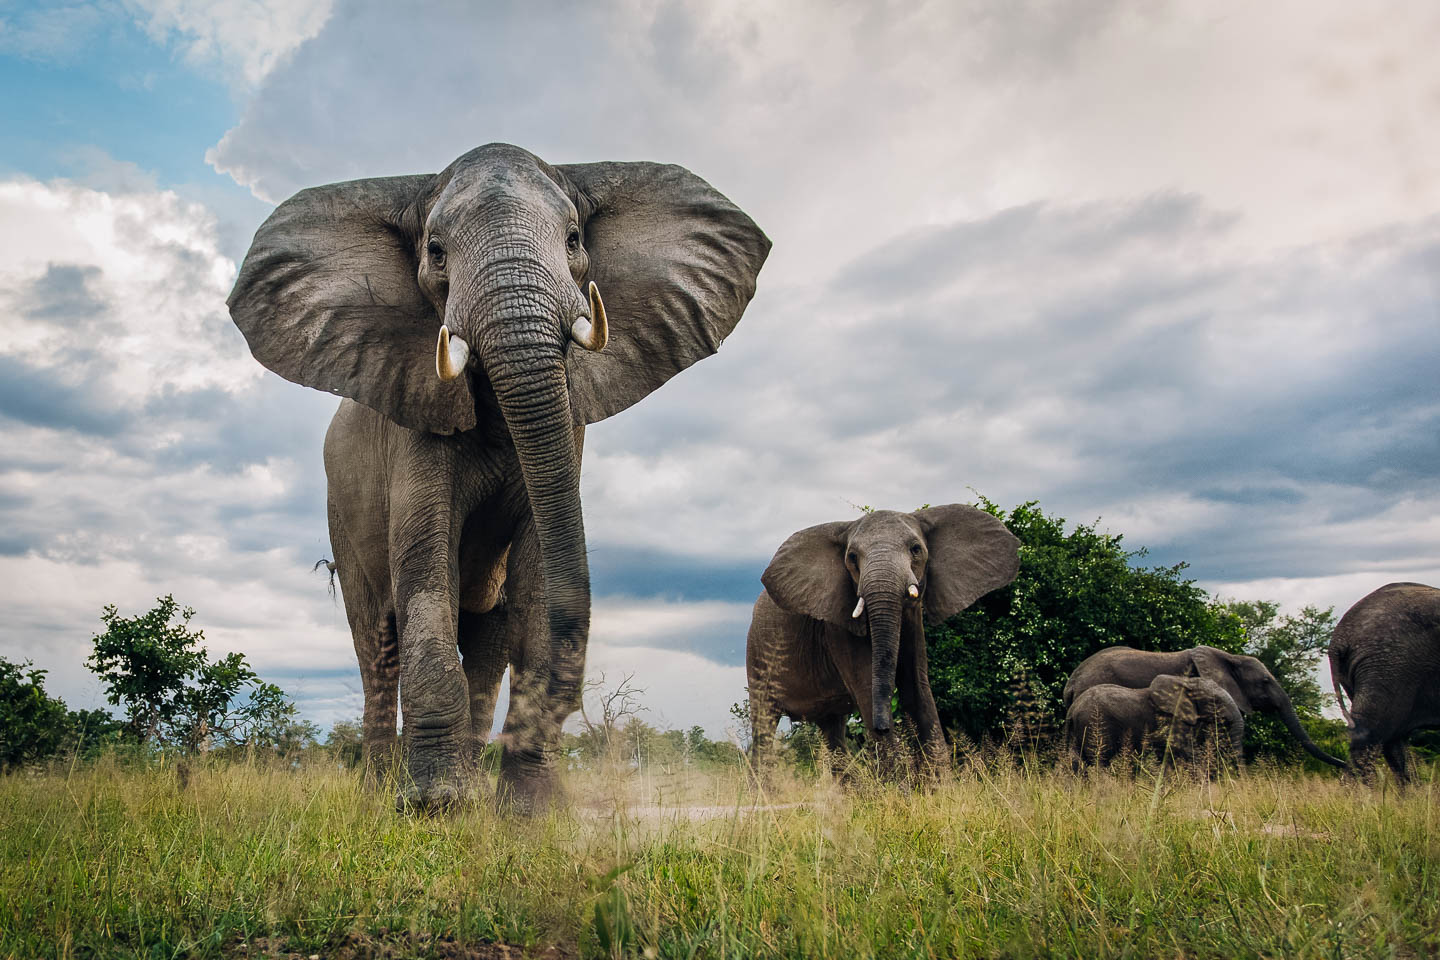 best time to visit zambia Elephants photographed with a remote camera-buggy (BeetleCam). South Luangwa National Park, Zambia.